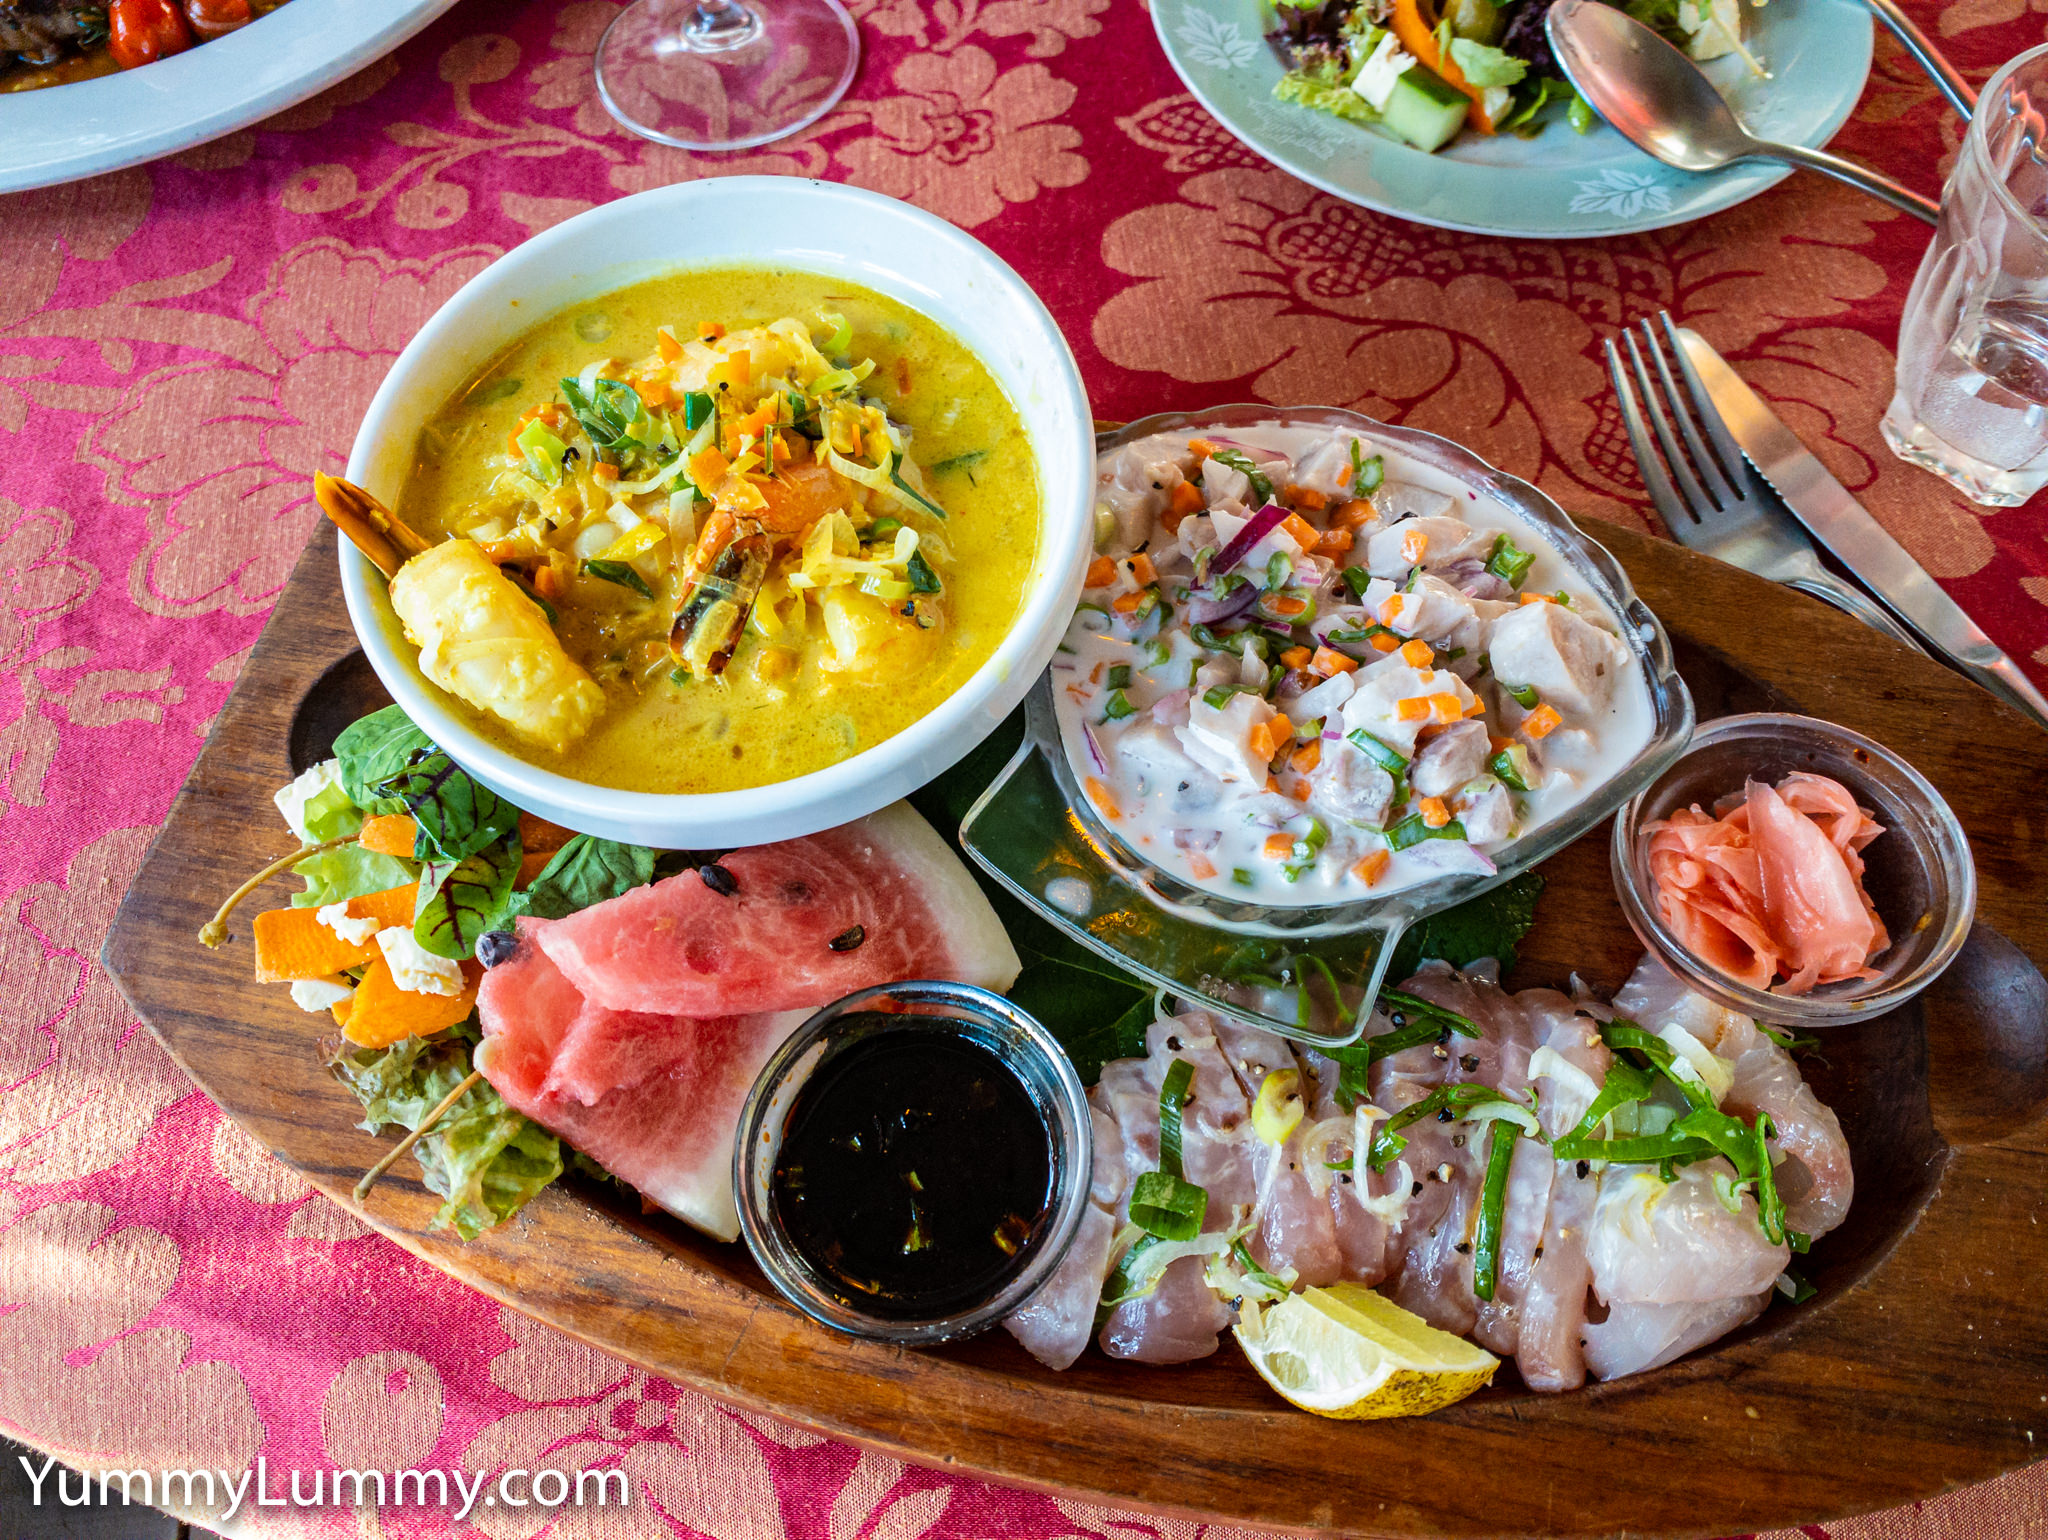 Photograph of my favourite meal on Norfolk Island. Dino's Seafood platter King prawns Kingfish Sashimi Kingfish salad. Gary Lum.